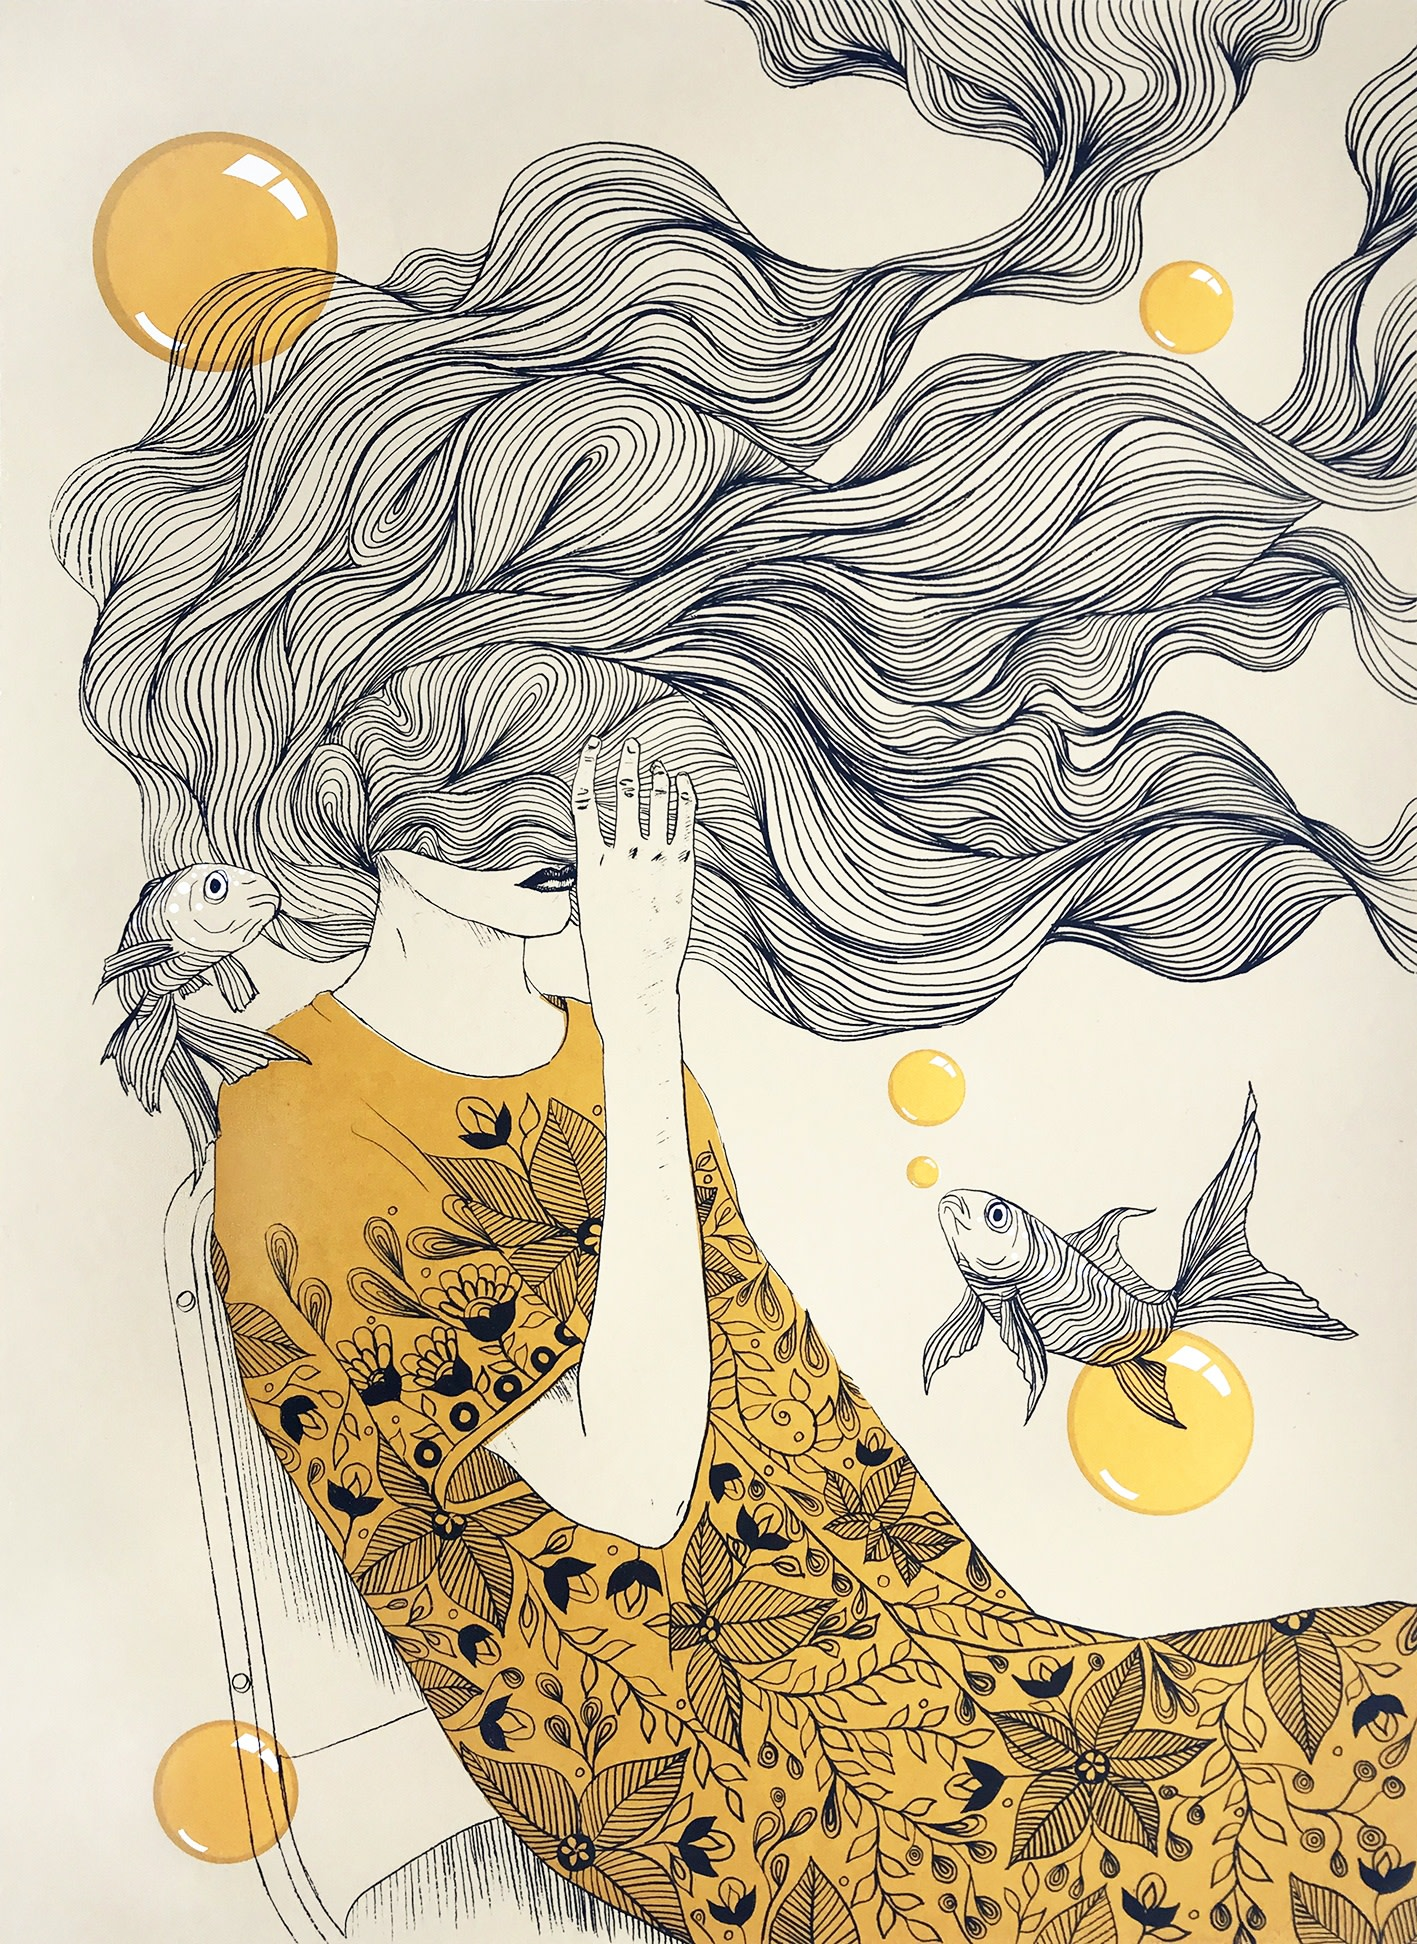 """<span class=""""link fancybox-details-link""""><a href=""""/exhibitions/17/works/image_standalone785/"""">View Detail Page</a></span><p><strong>Liz Ramos-Prado</strong></p><p>The Struggle is Real</p><p>screenprint, ed of 10</p><p>52 x 72cm</p><p>£640 framed</p><p>£500 unframed</p>"""